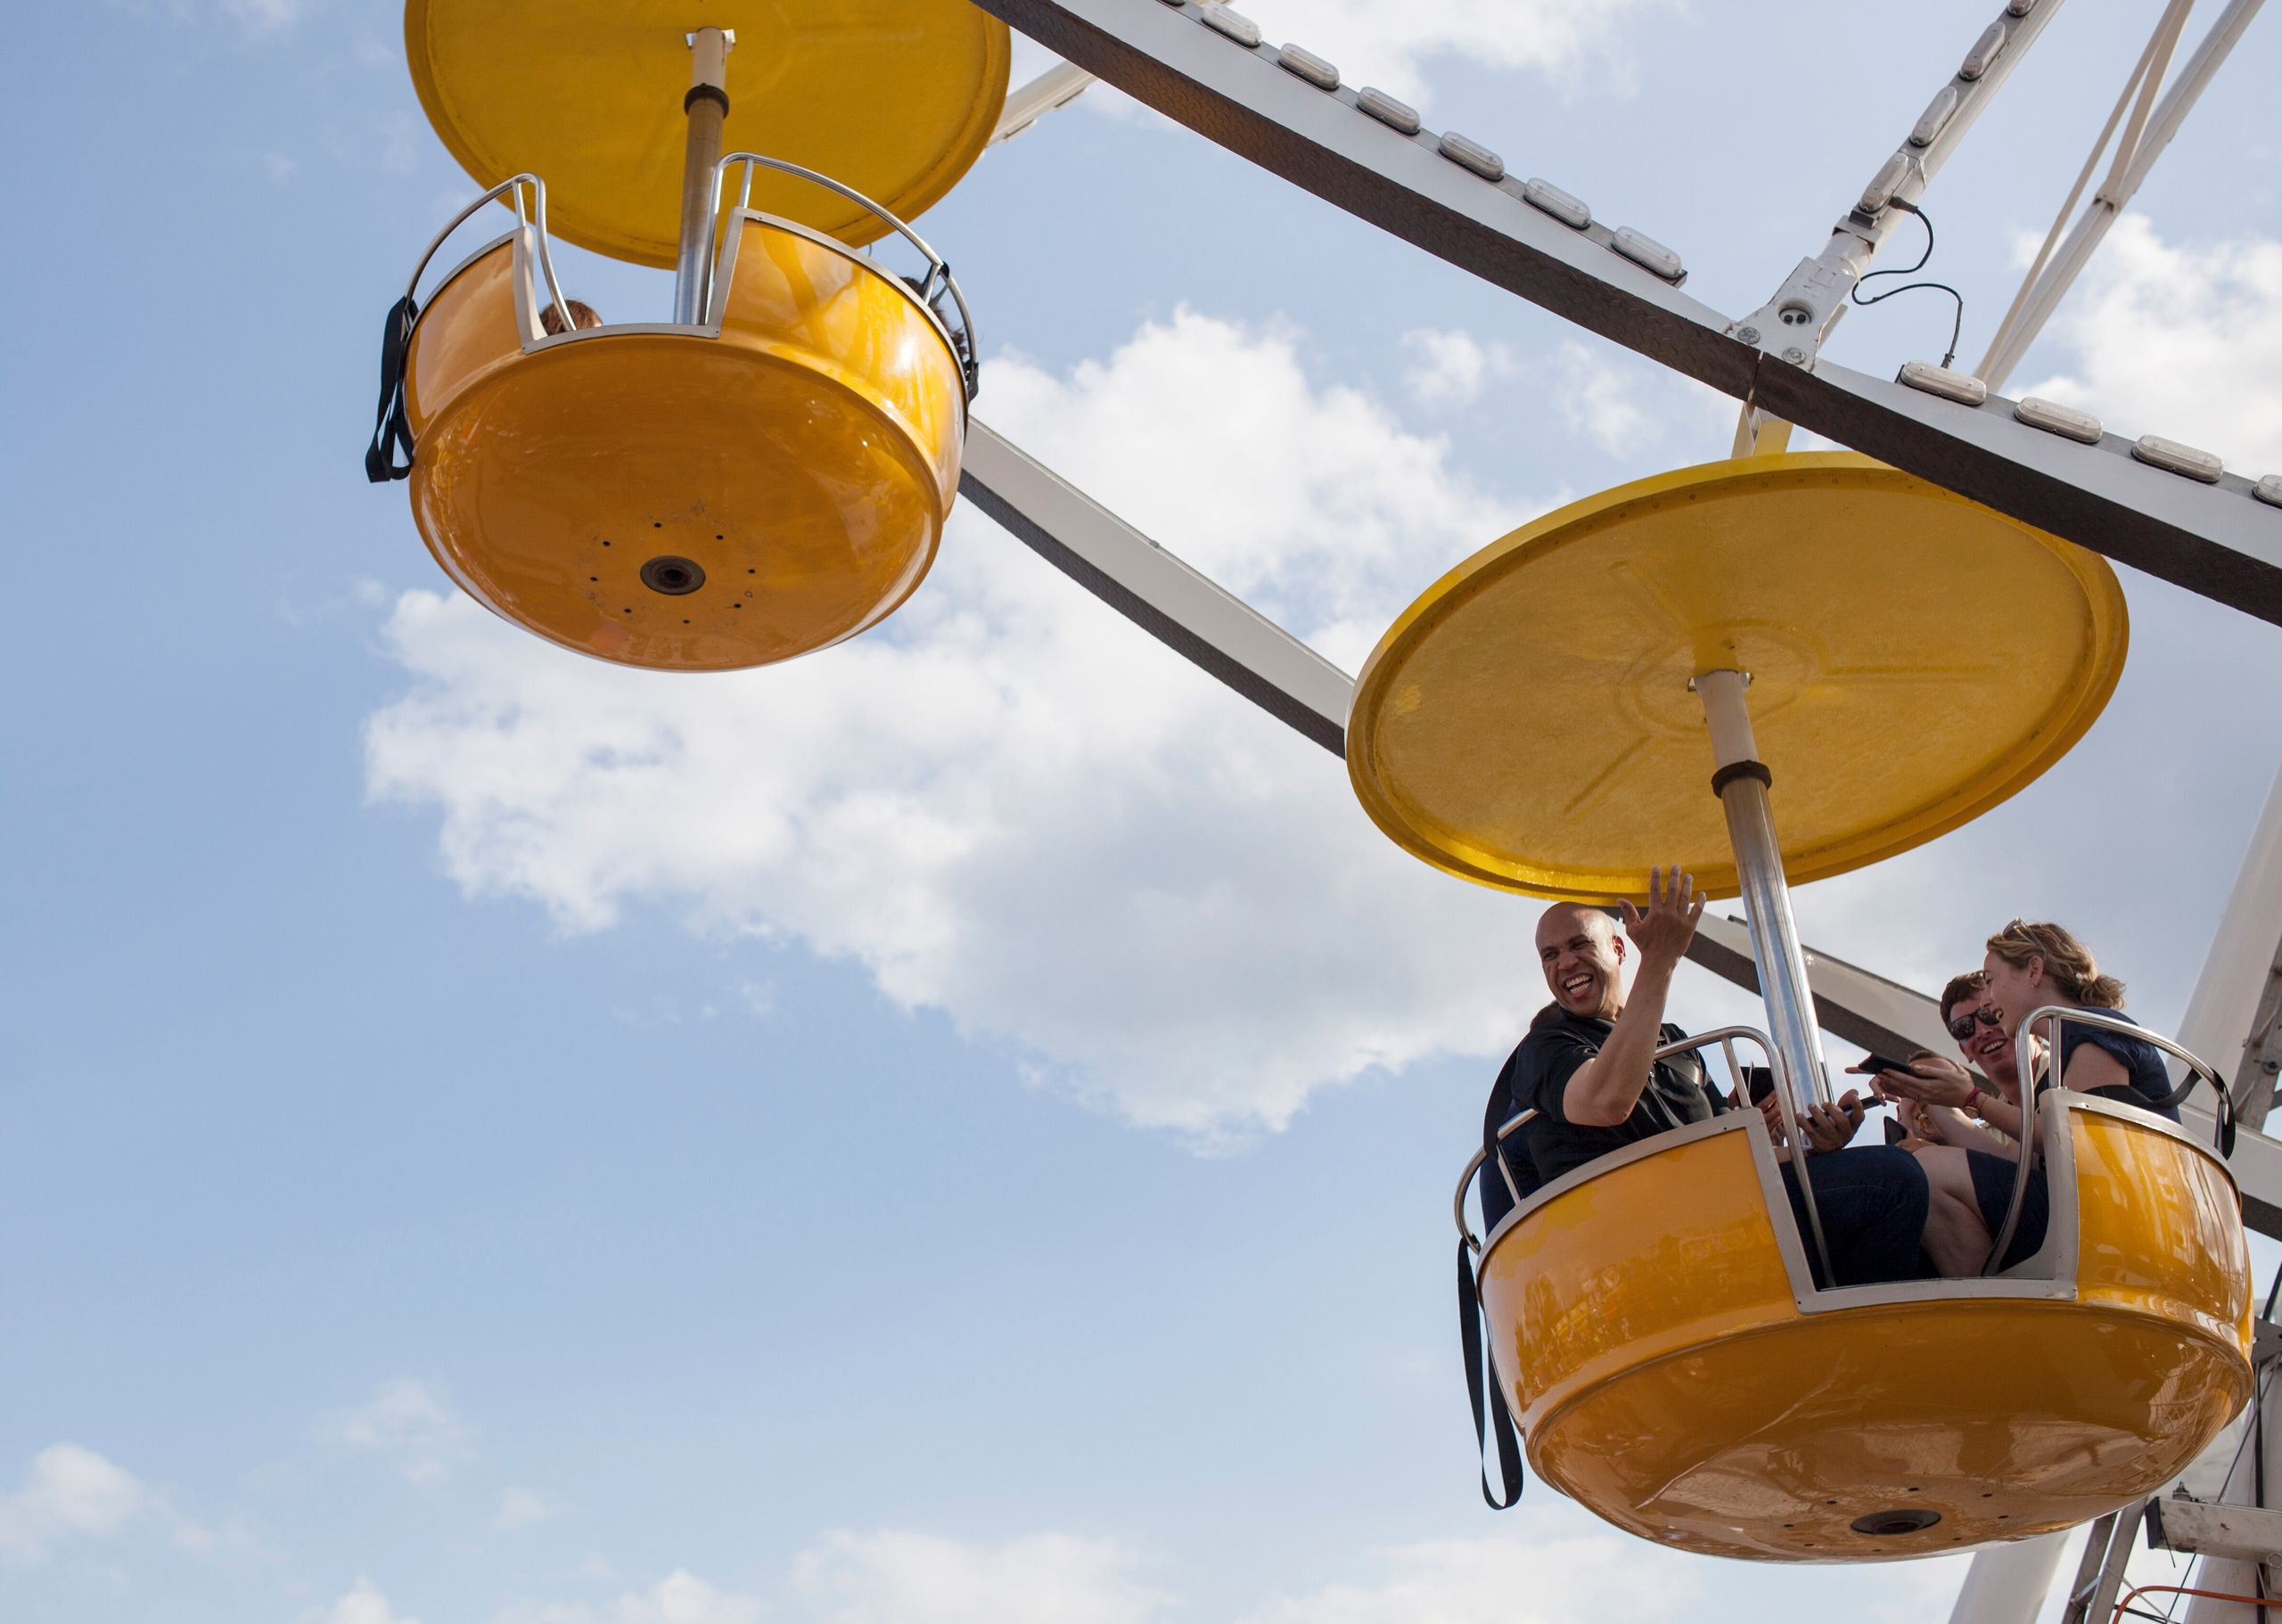 Sen. Cory Booker (D-N.J.) rides the Ferris wheel with reporters on Saturday, Aug. 10, 2019, at the Iowa State Fair.